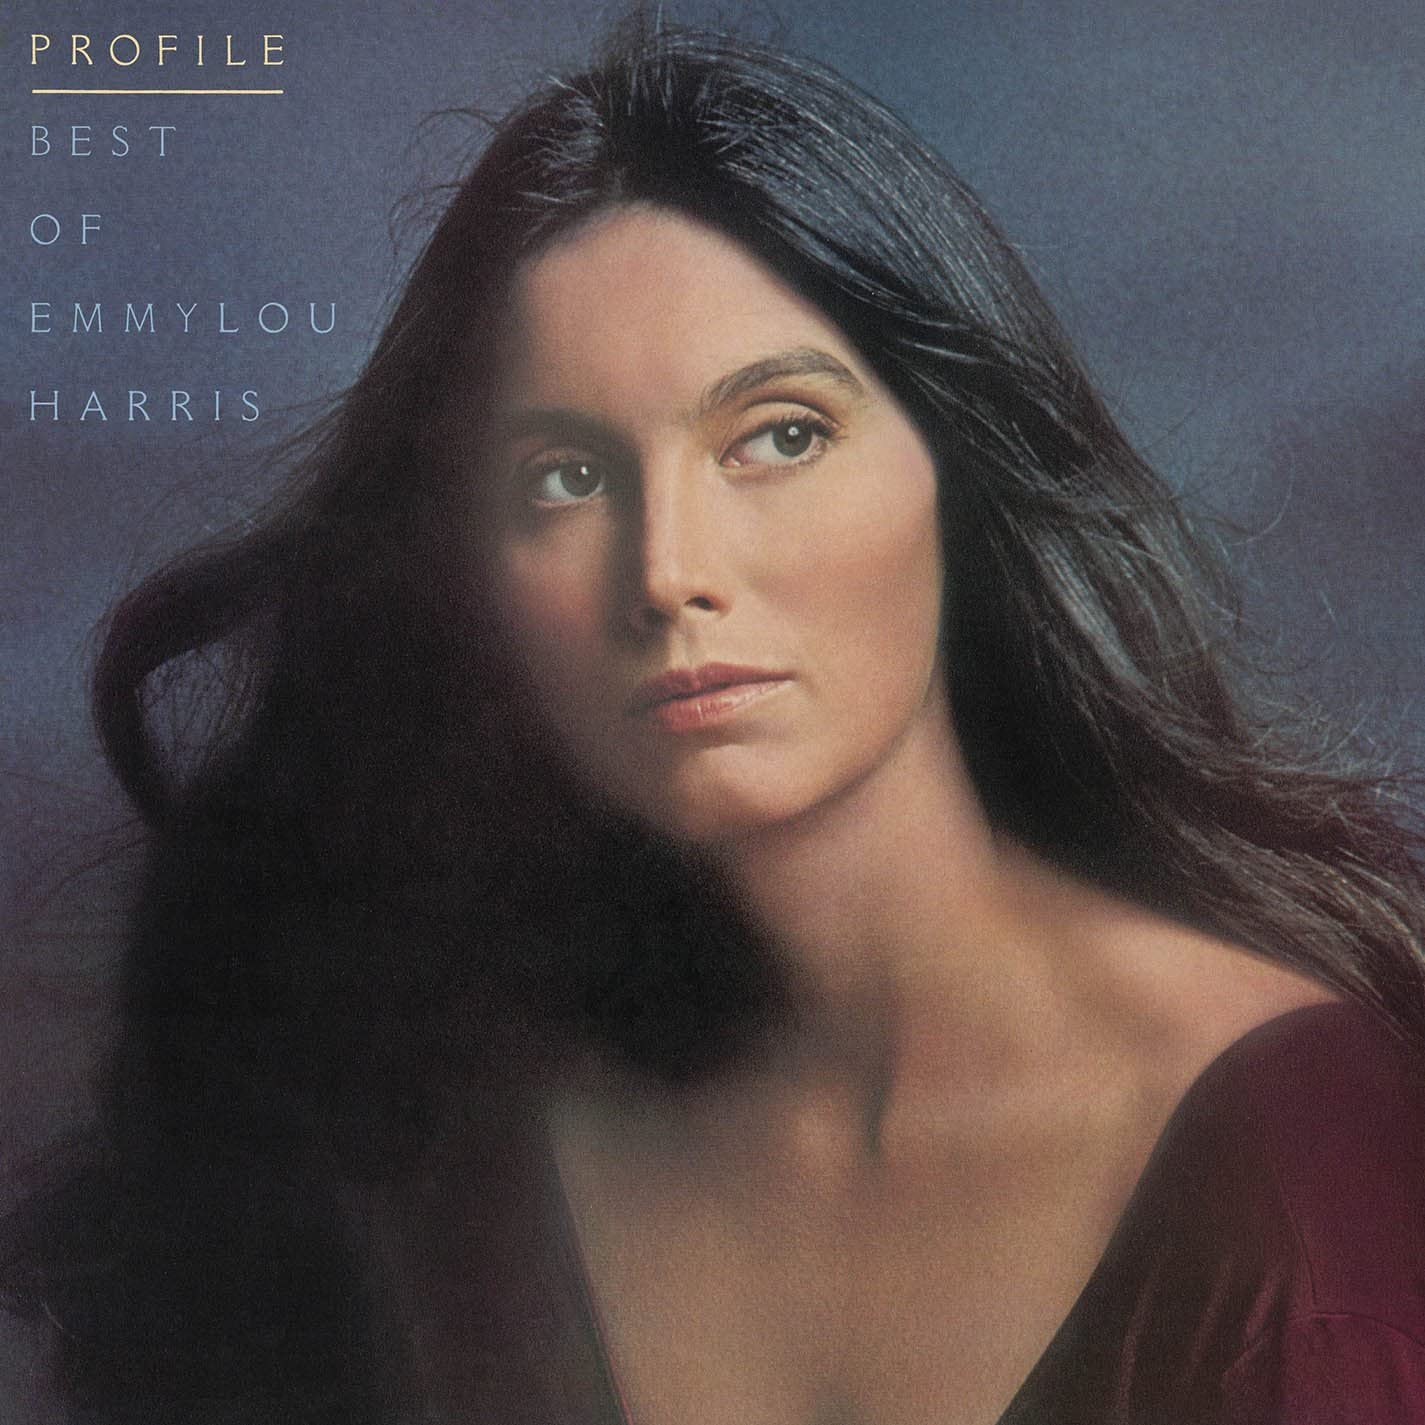 Harris, Emmylou/Best Of Emmy Lou Harris [LP]